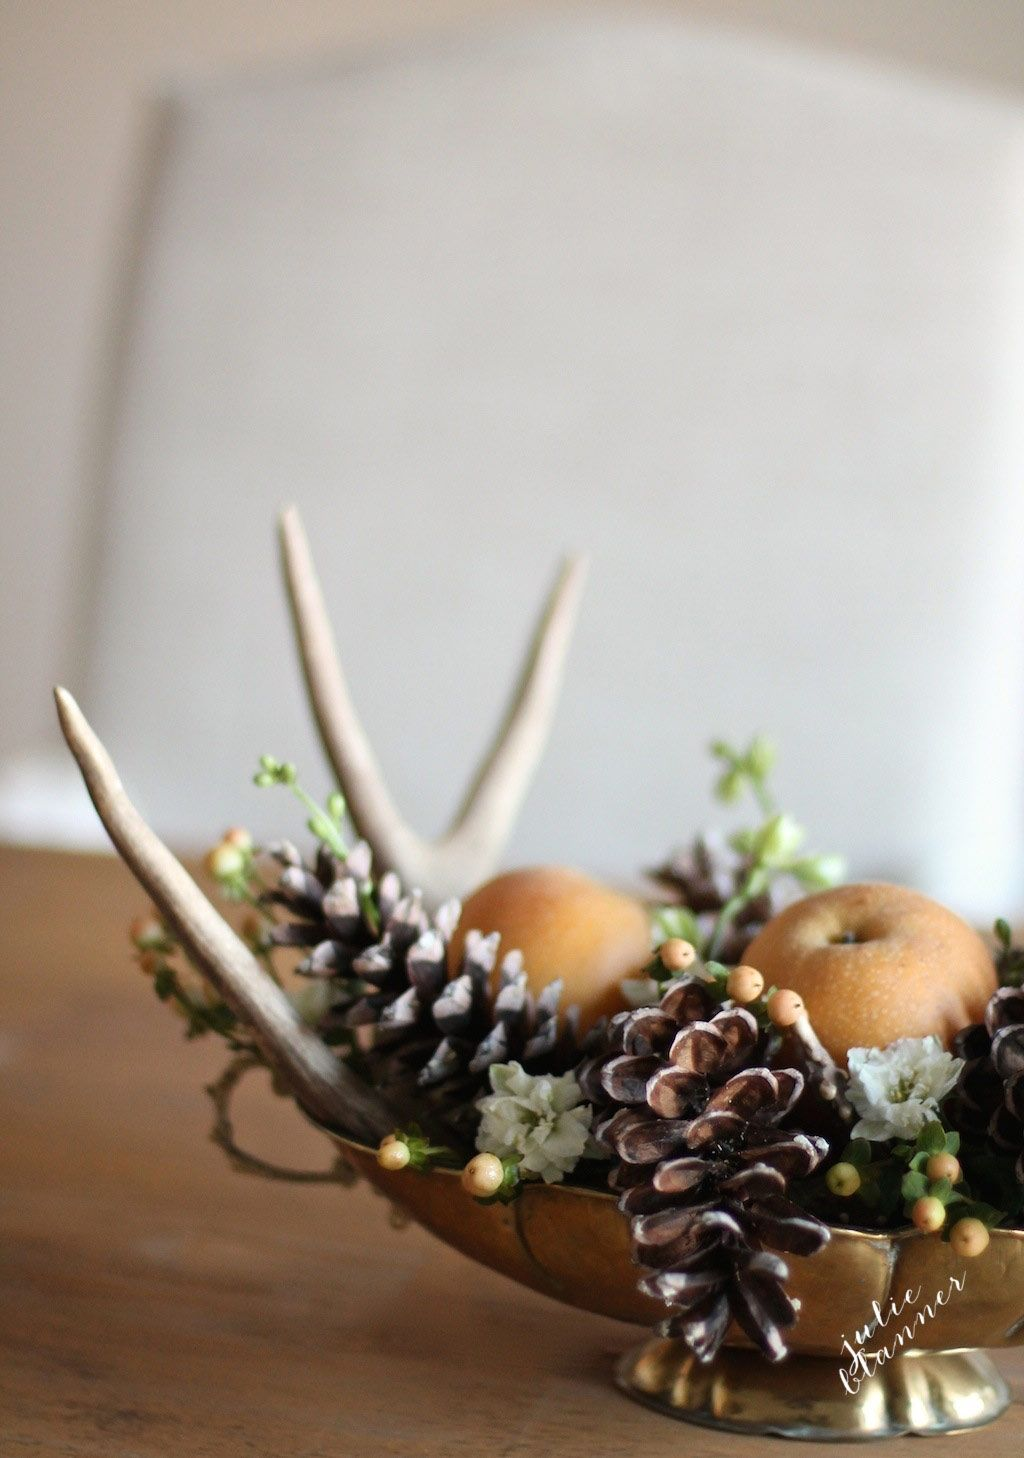 23 Thanksgiving Table Centerpieces and Flowers - Ideas for Floral ...